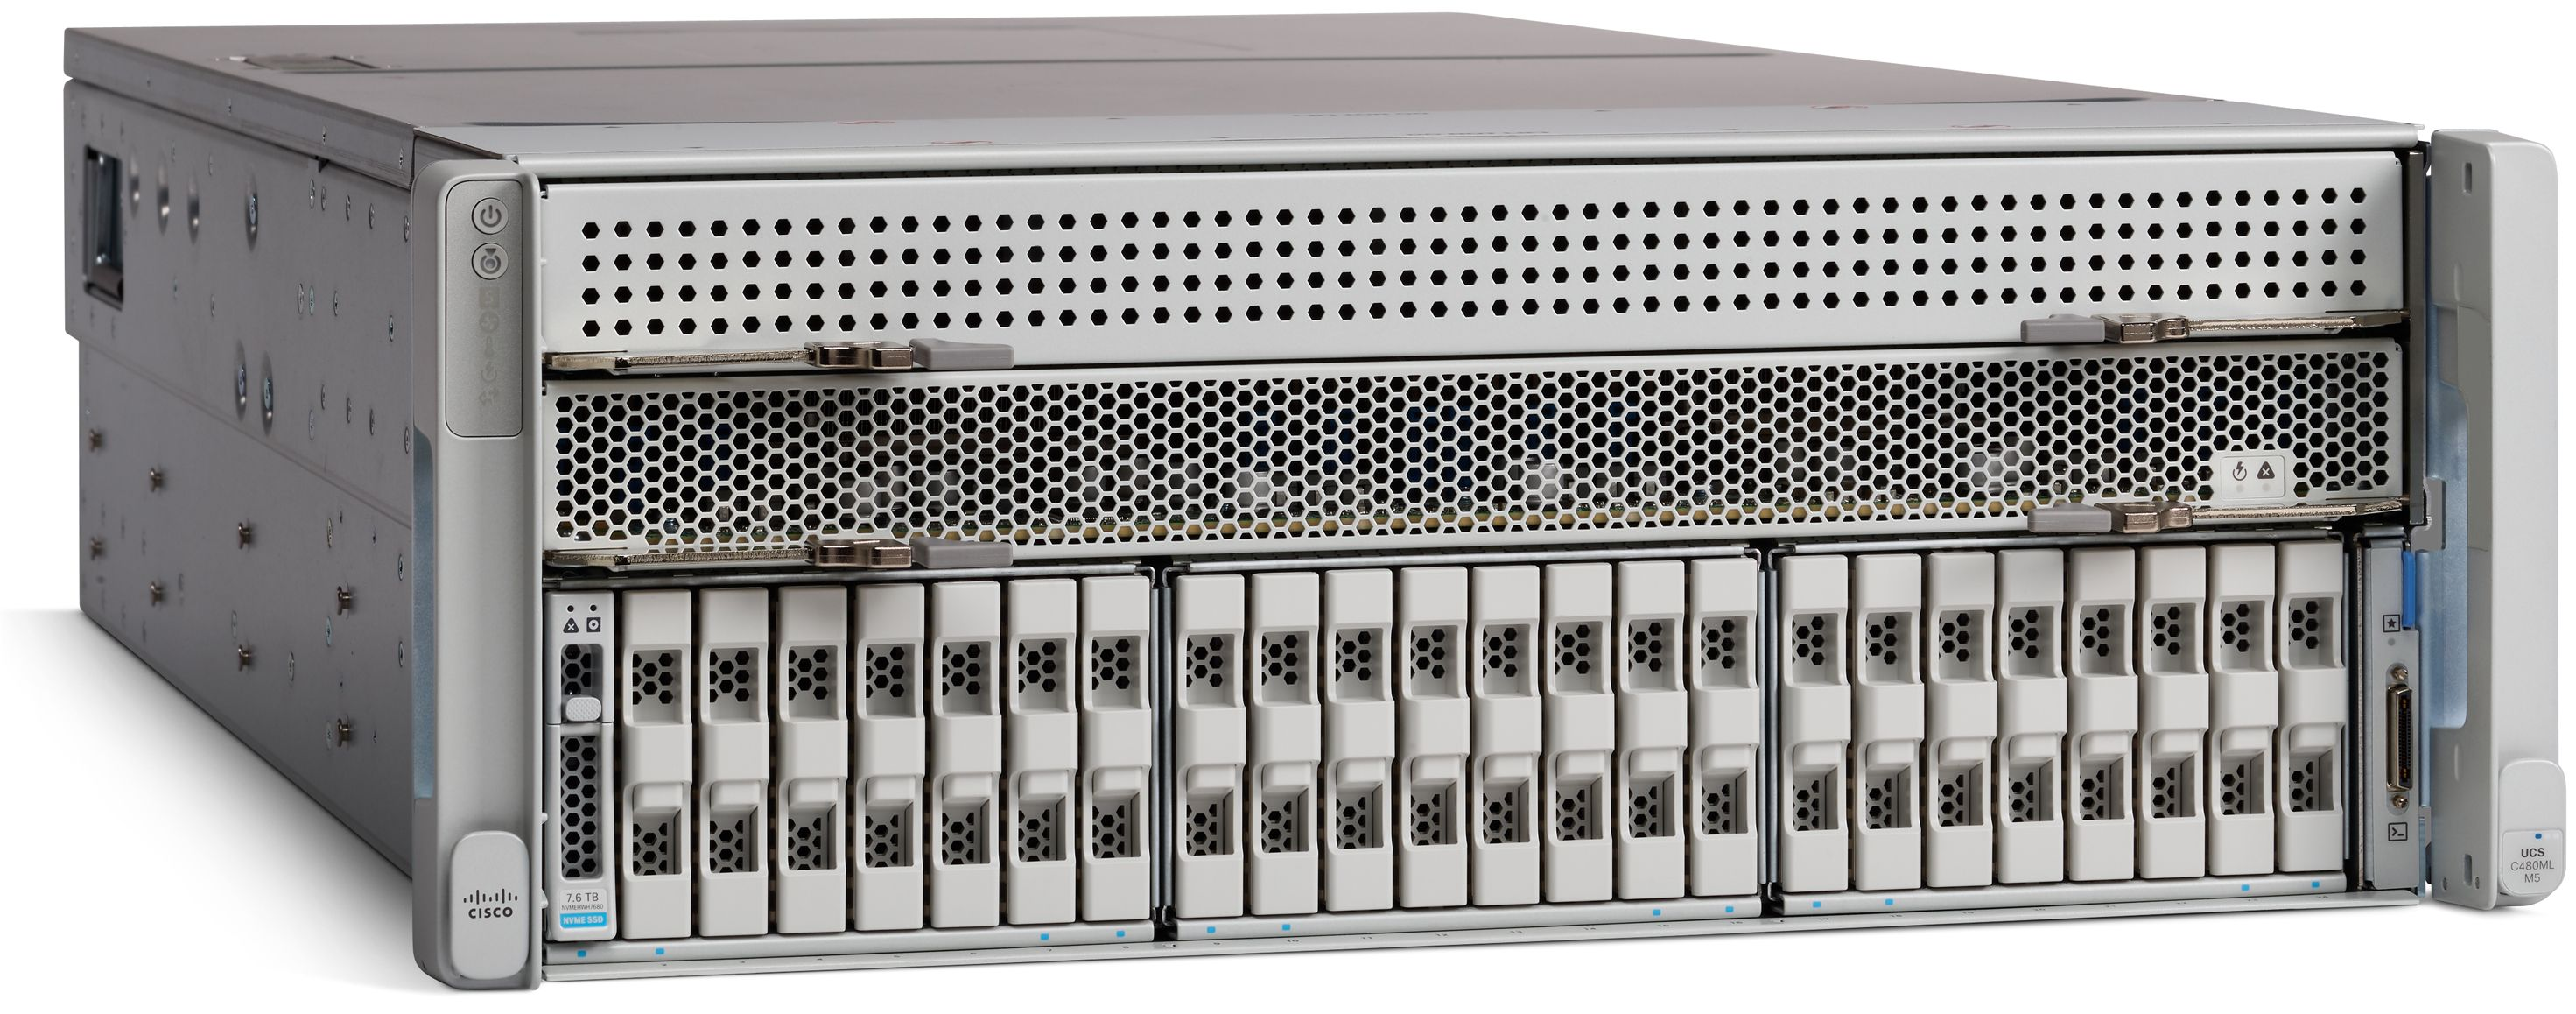 Cisco UCS C480 ML M5 Rack Server